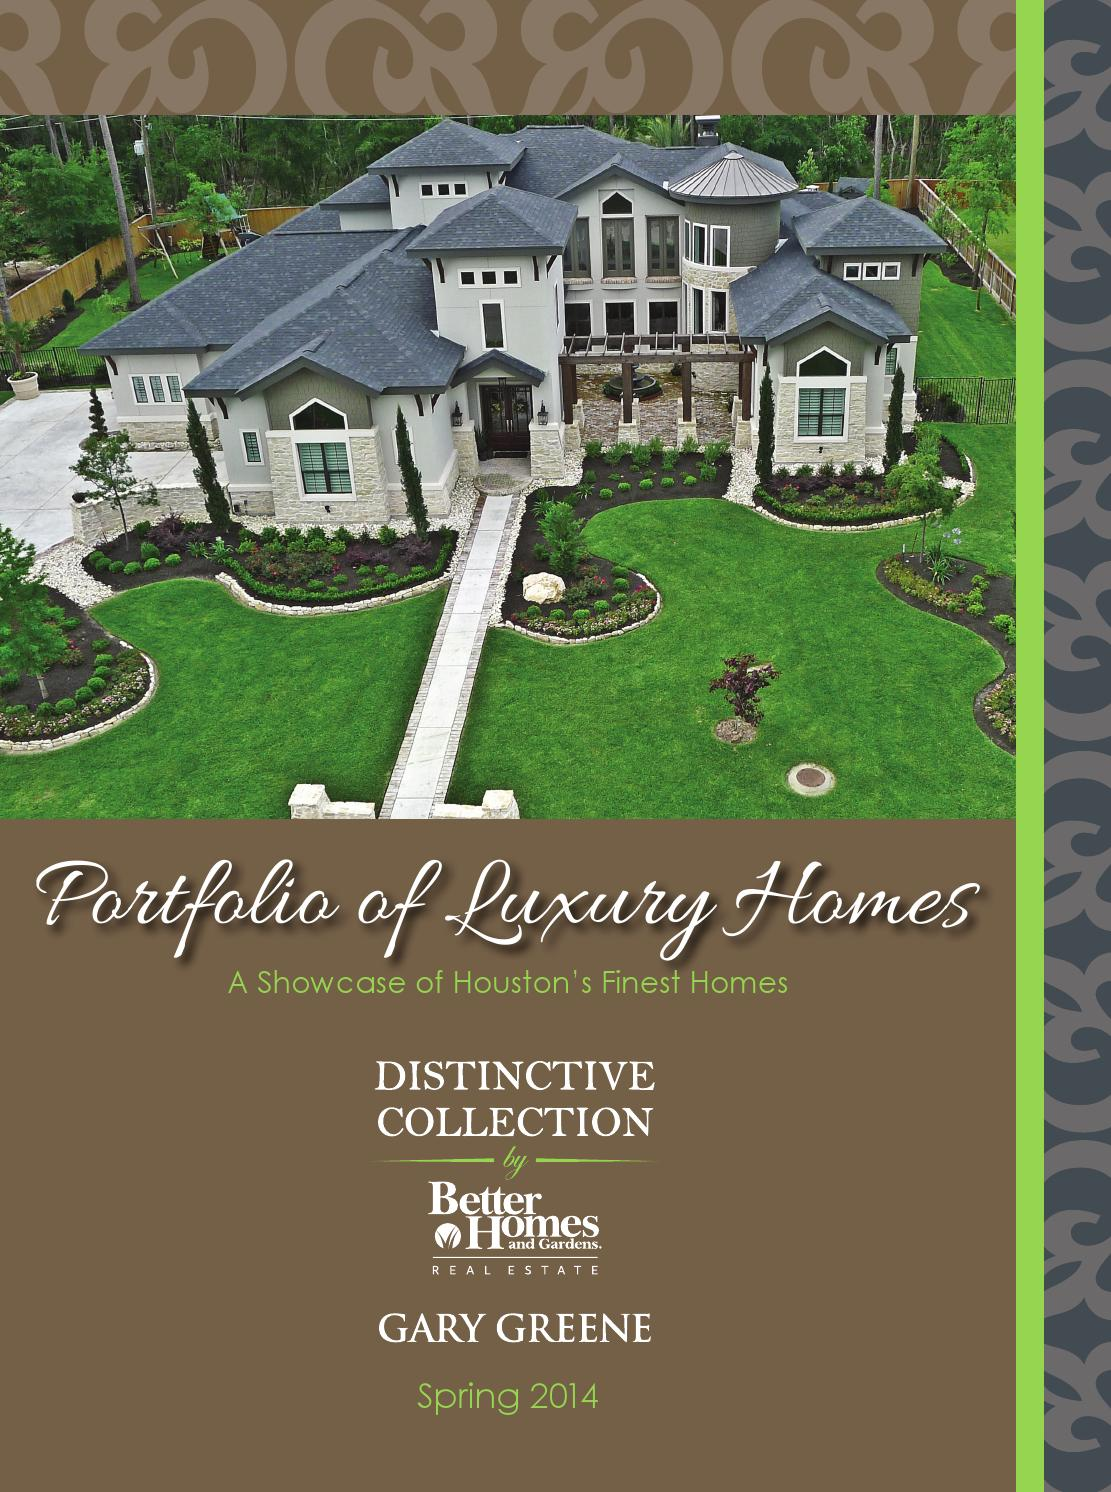 Portfolio Of Luxury Homes Spring 2014 By Better Homes And Gardens Real Estate Gary Greene Issuu